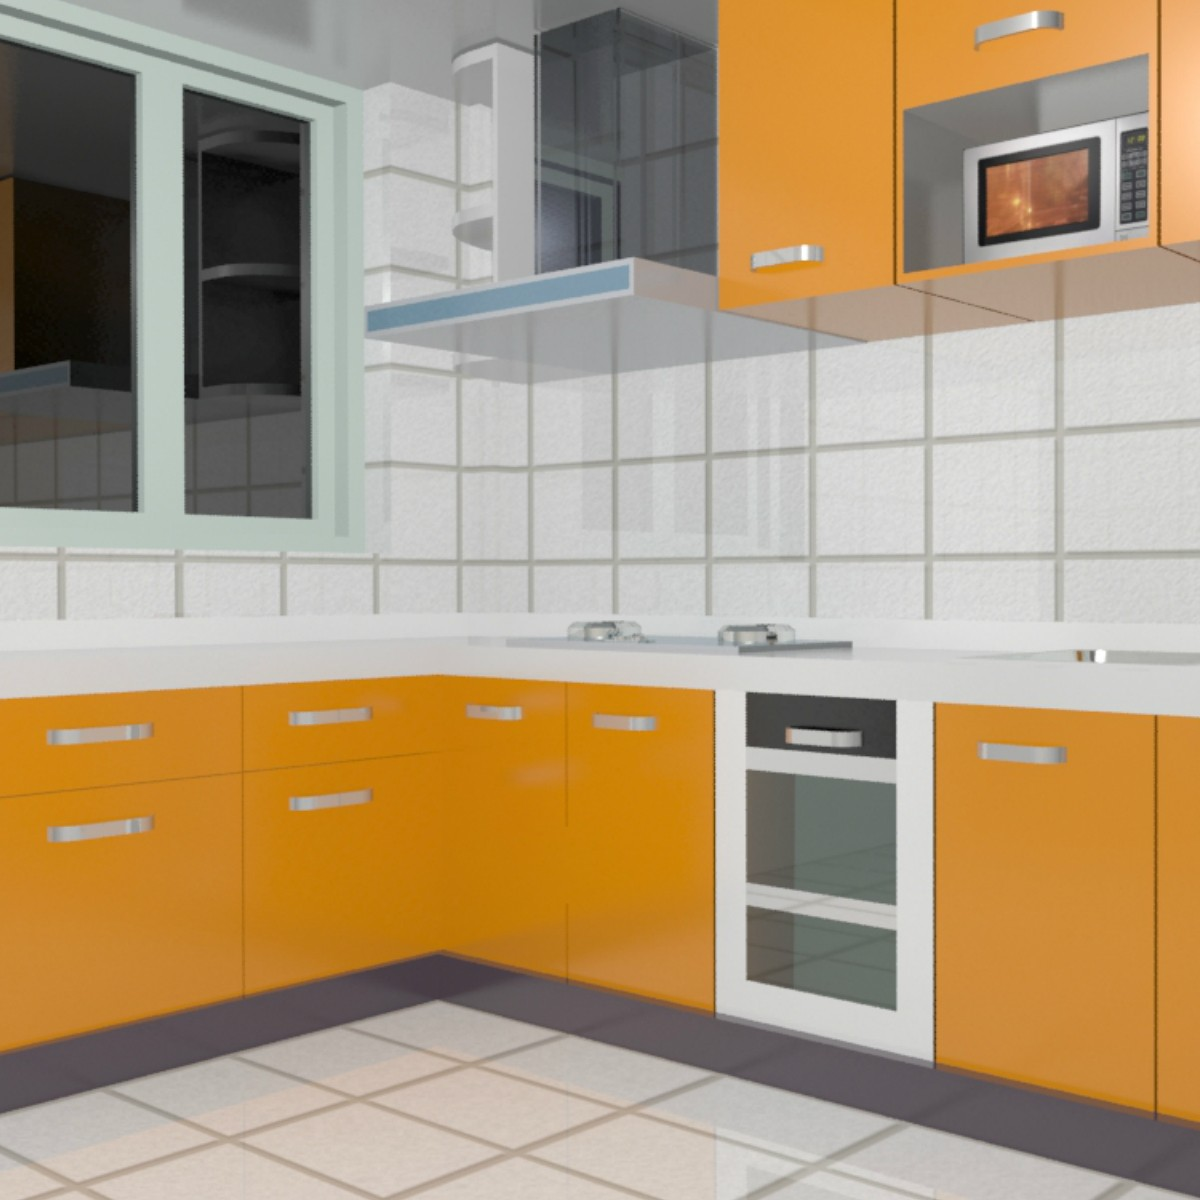 Foundation dezin decor 3d kitchen model design for Model kitchen design